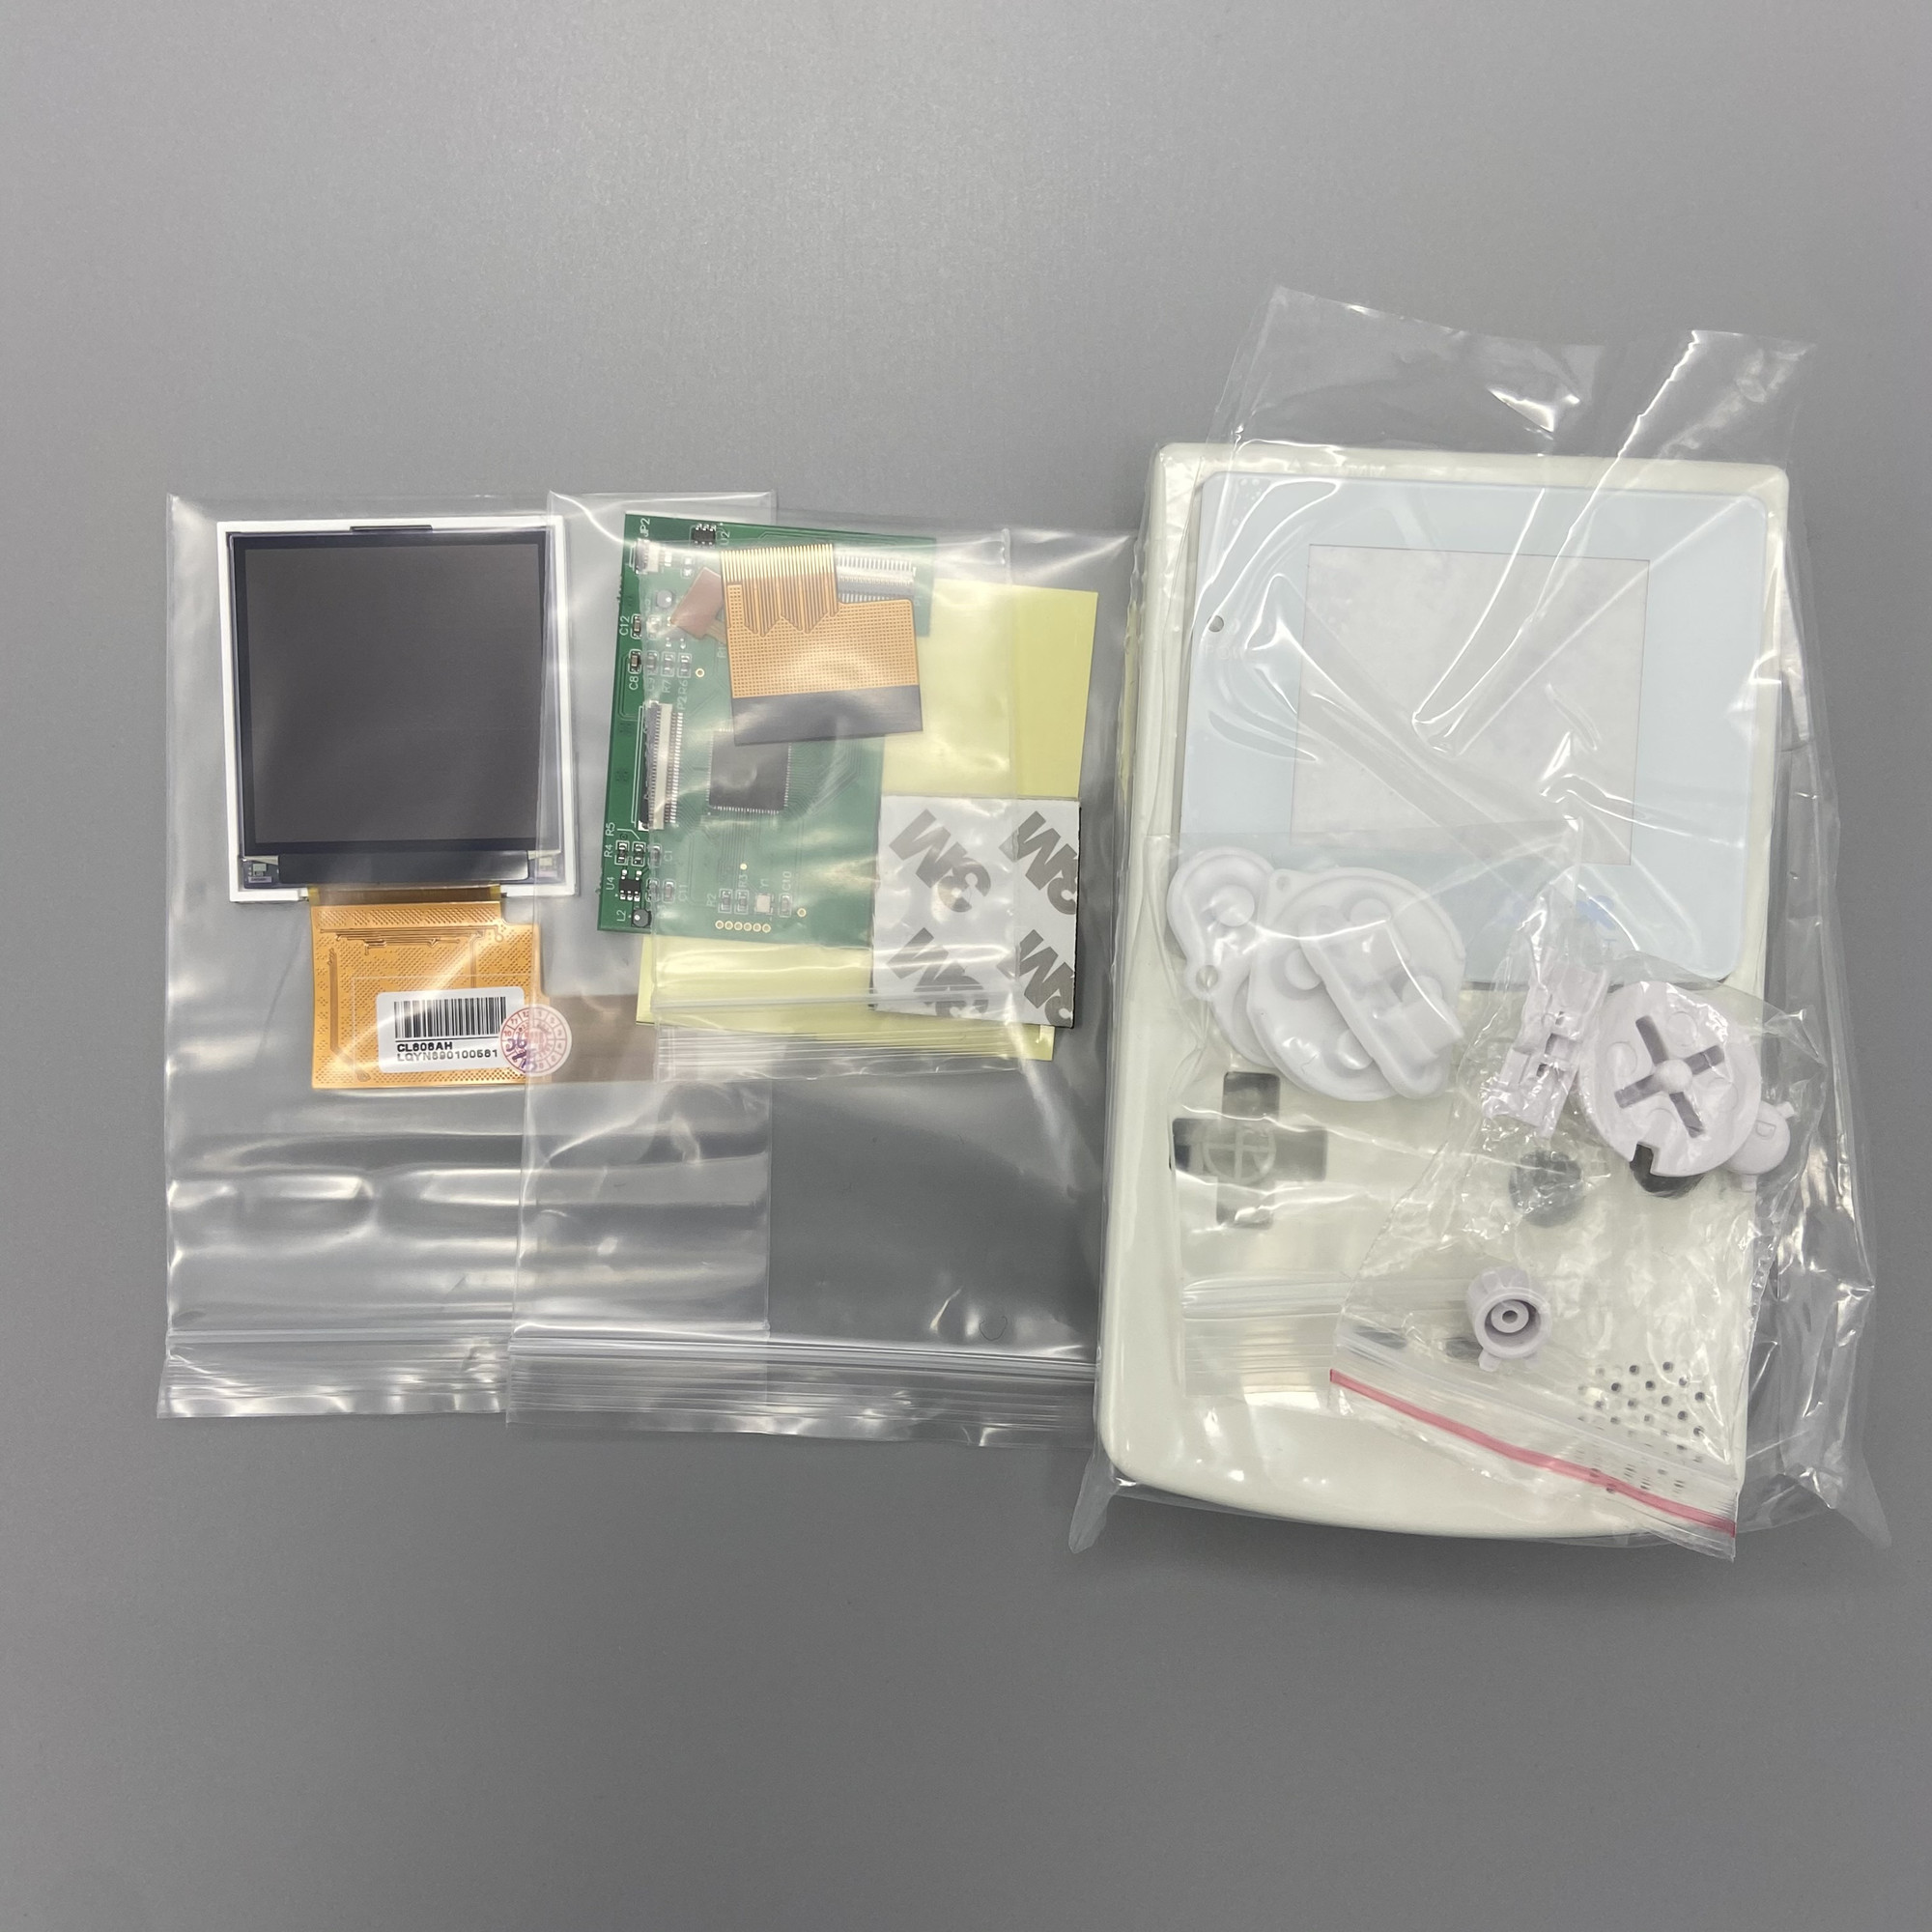 2.2 inches GBC high brightness LCD and new shell for Gameboy Color,GBC LCD screen